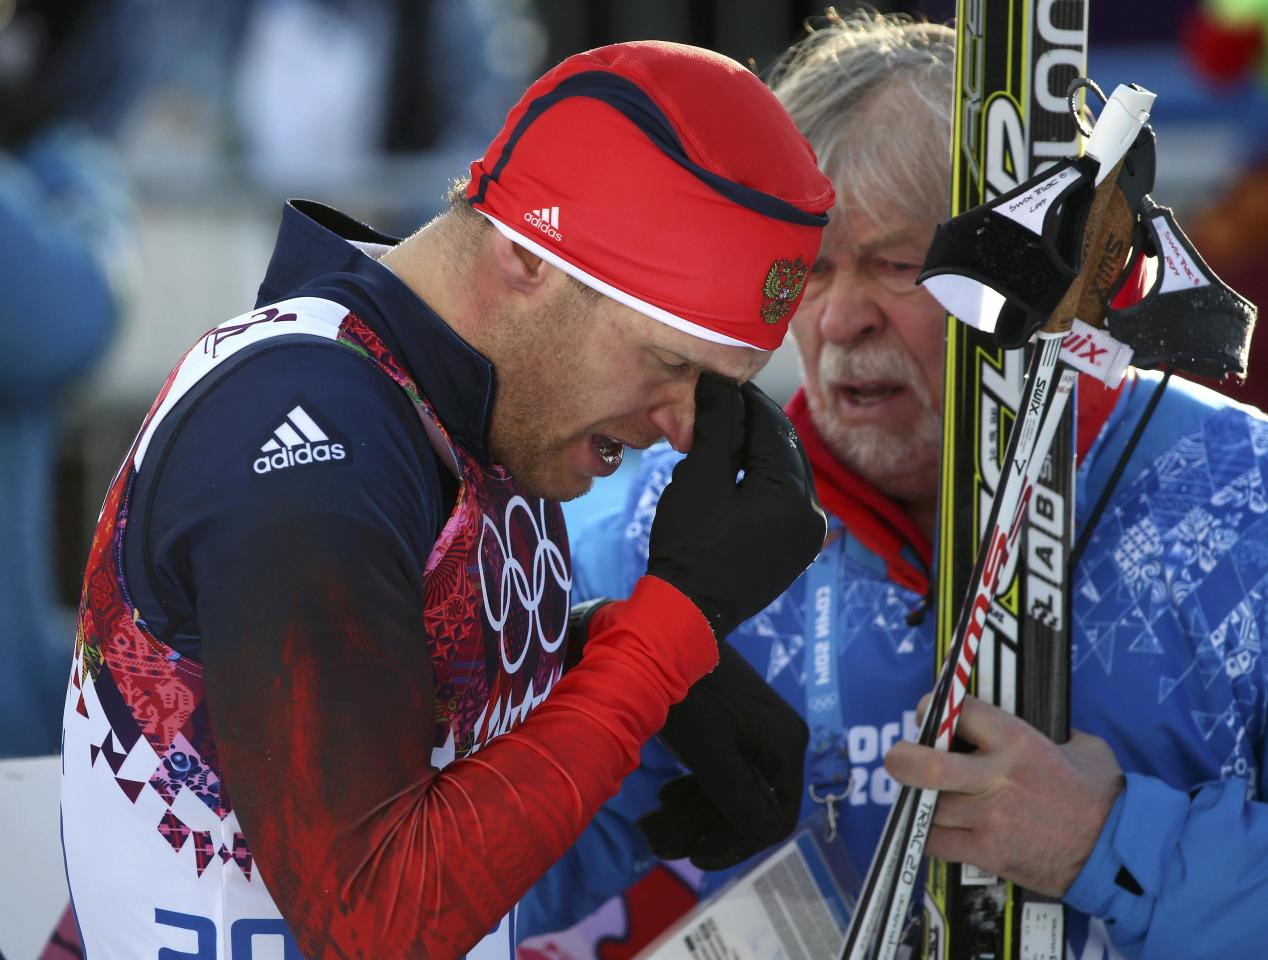 Russia's Anton Gafarov (L) reacts after failing to get through to the next stage of competition, in the men's cross-country sprint semi-final at the Sochi 2014 Winter Olympic Games in Rosa Khutor February 11, 2014. REUTERS/Sergei Karpukhin (RUSSIA - Tags: OLYMPICS SPORT SKIING)